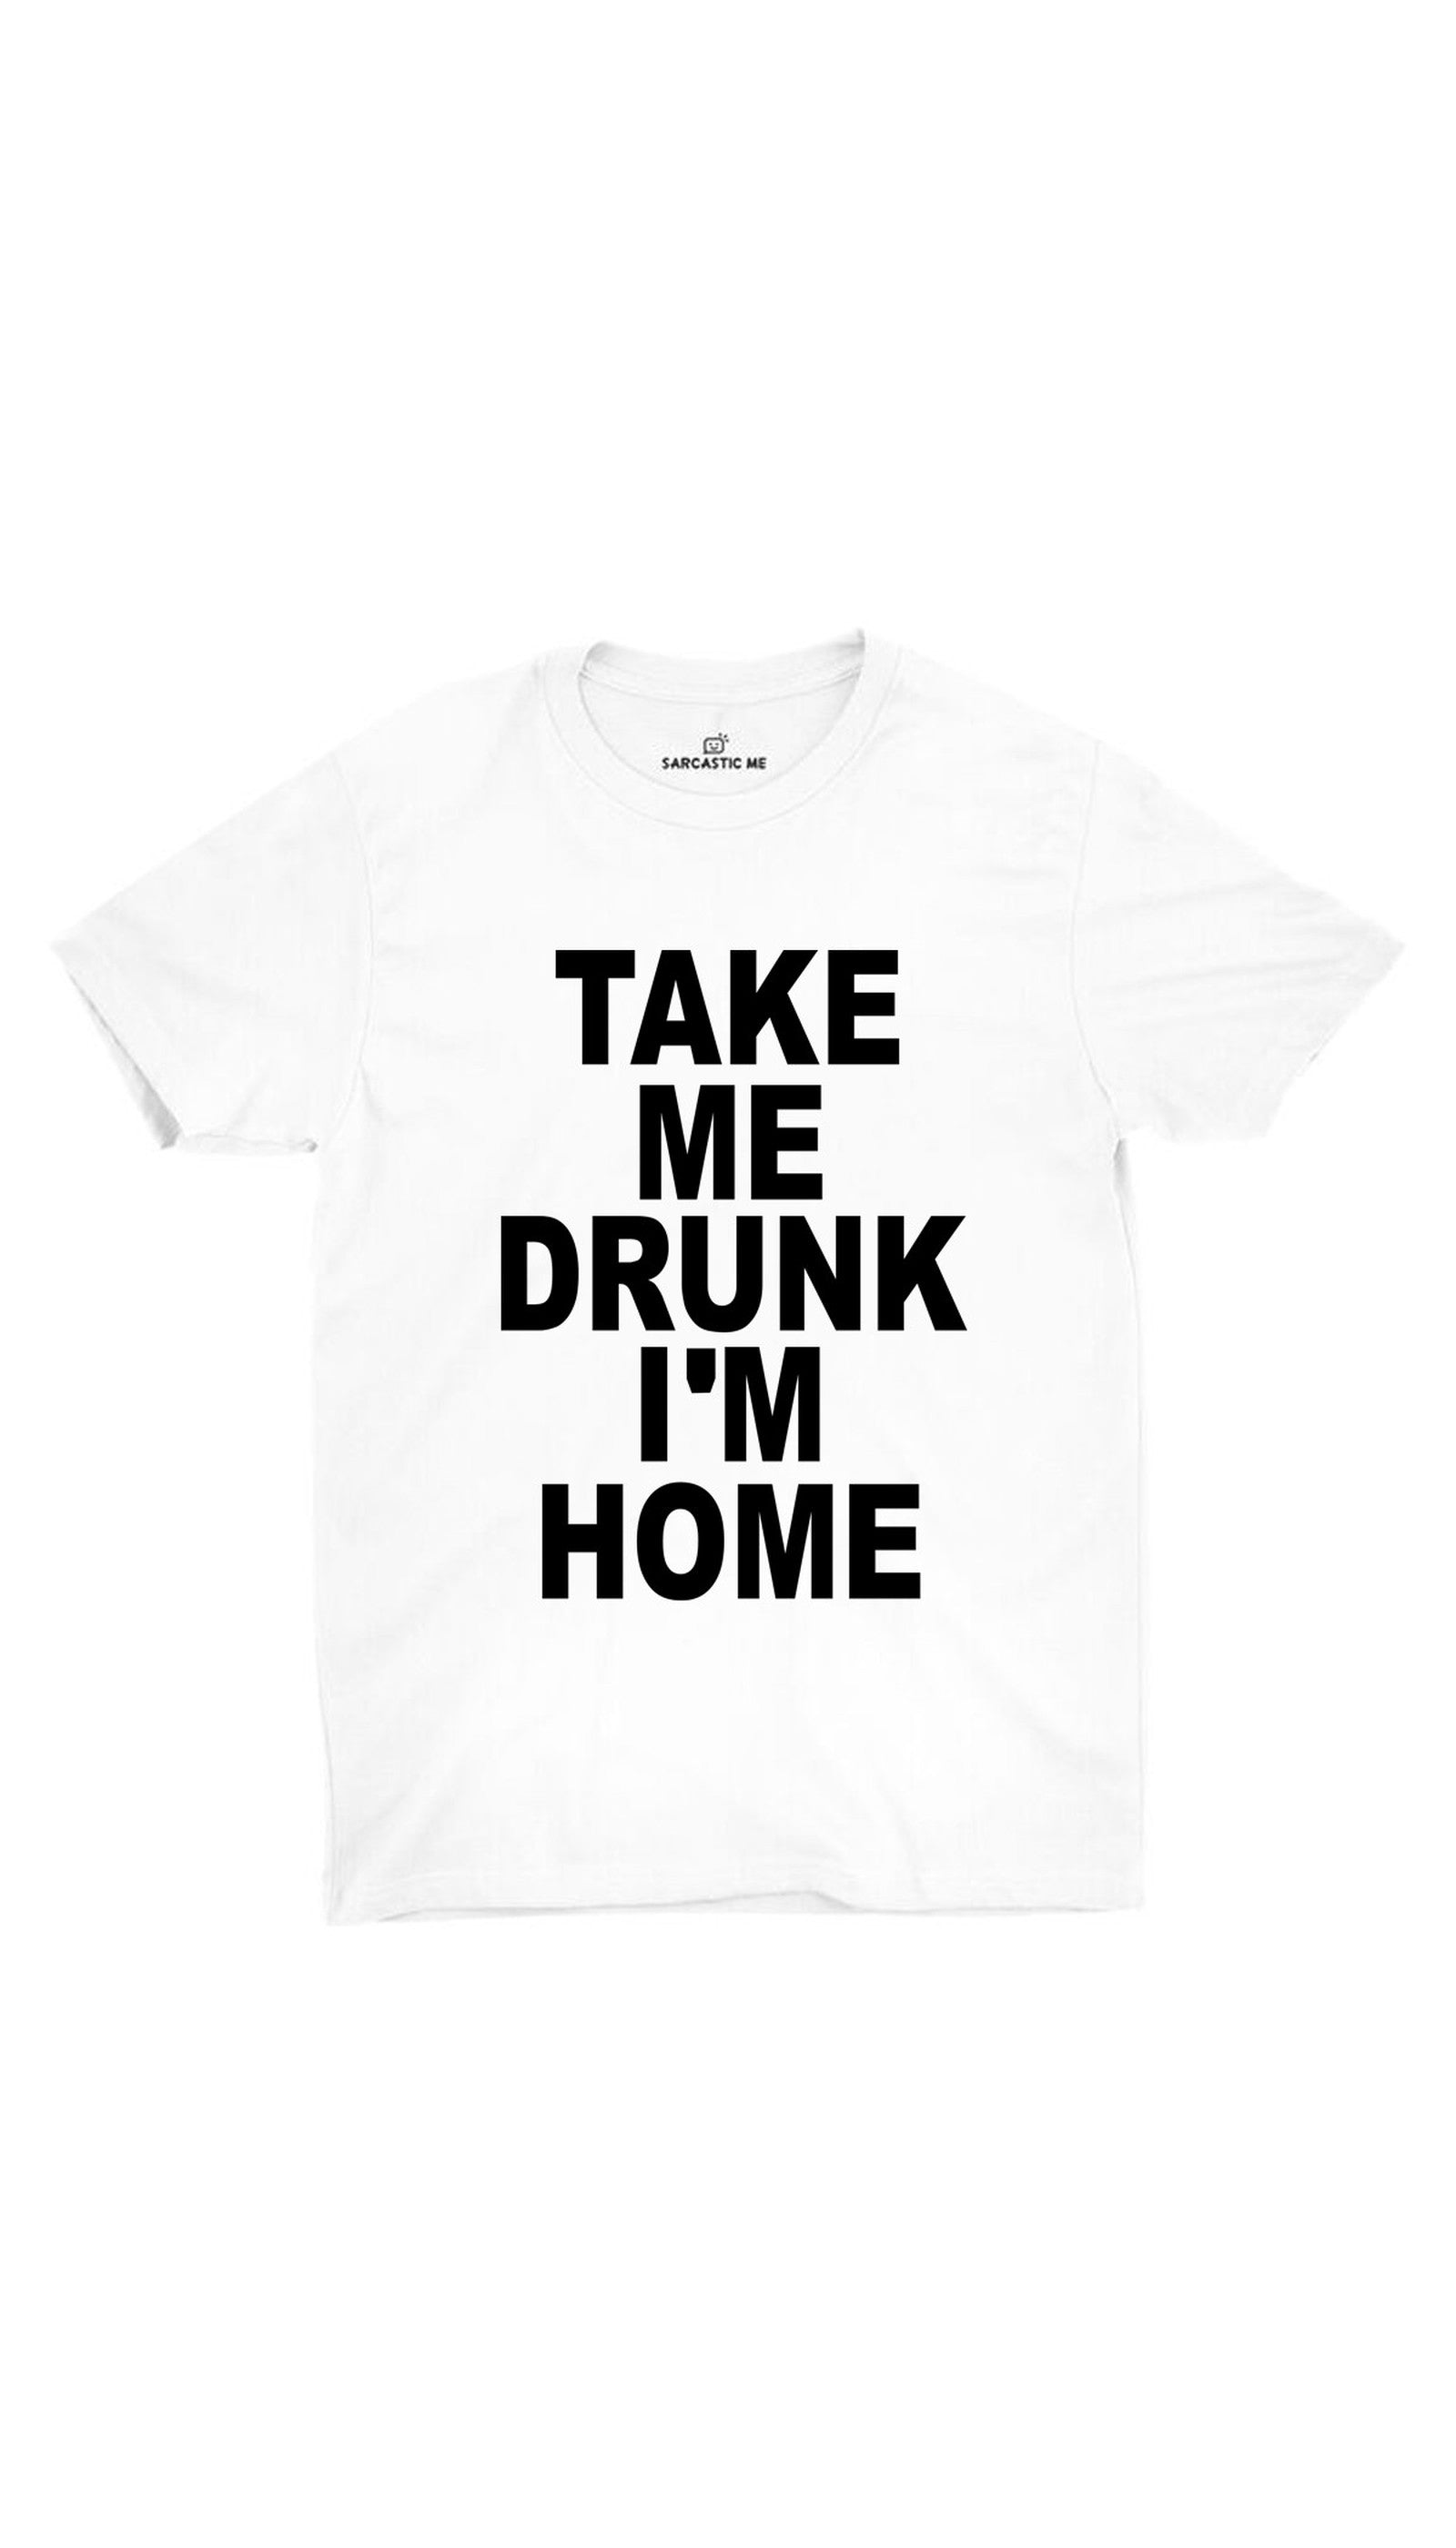 Take Me Drunk I'm Home White Unisex T-shirt | Sarcastic ME